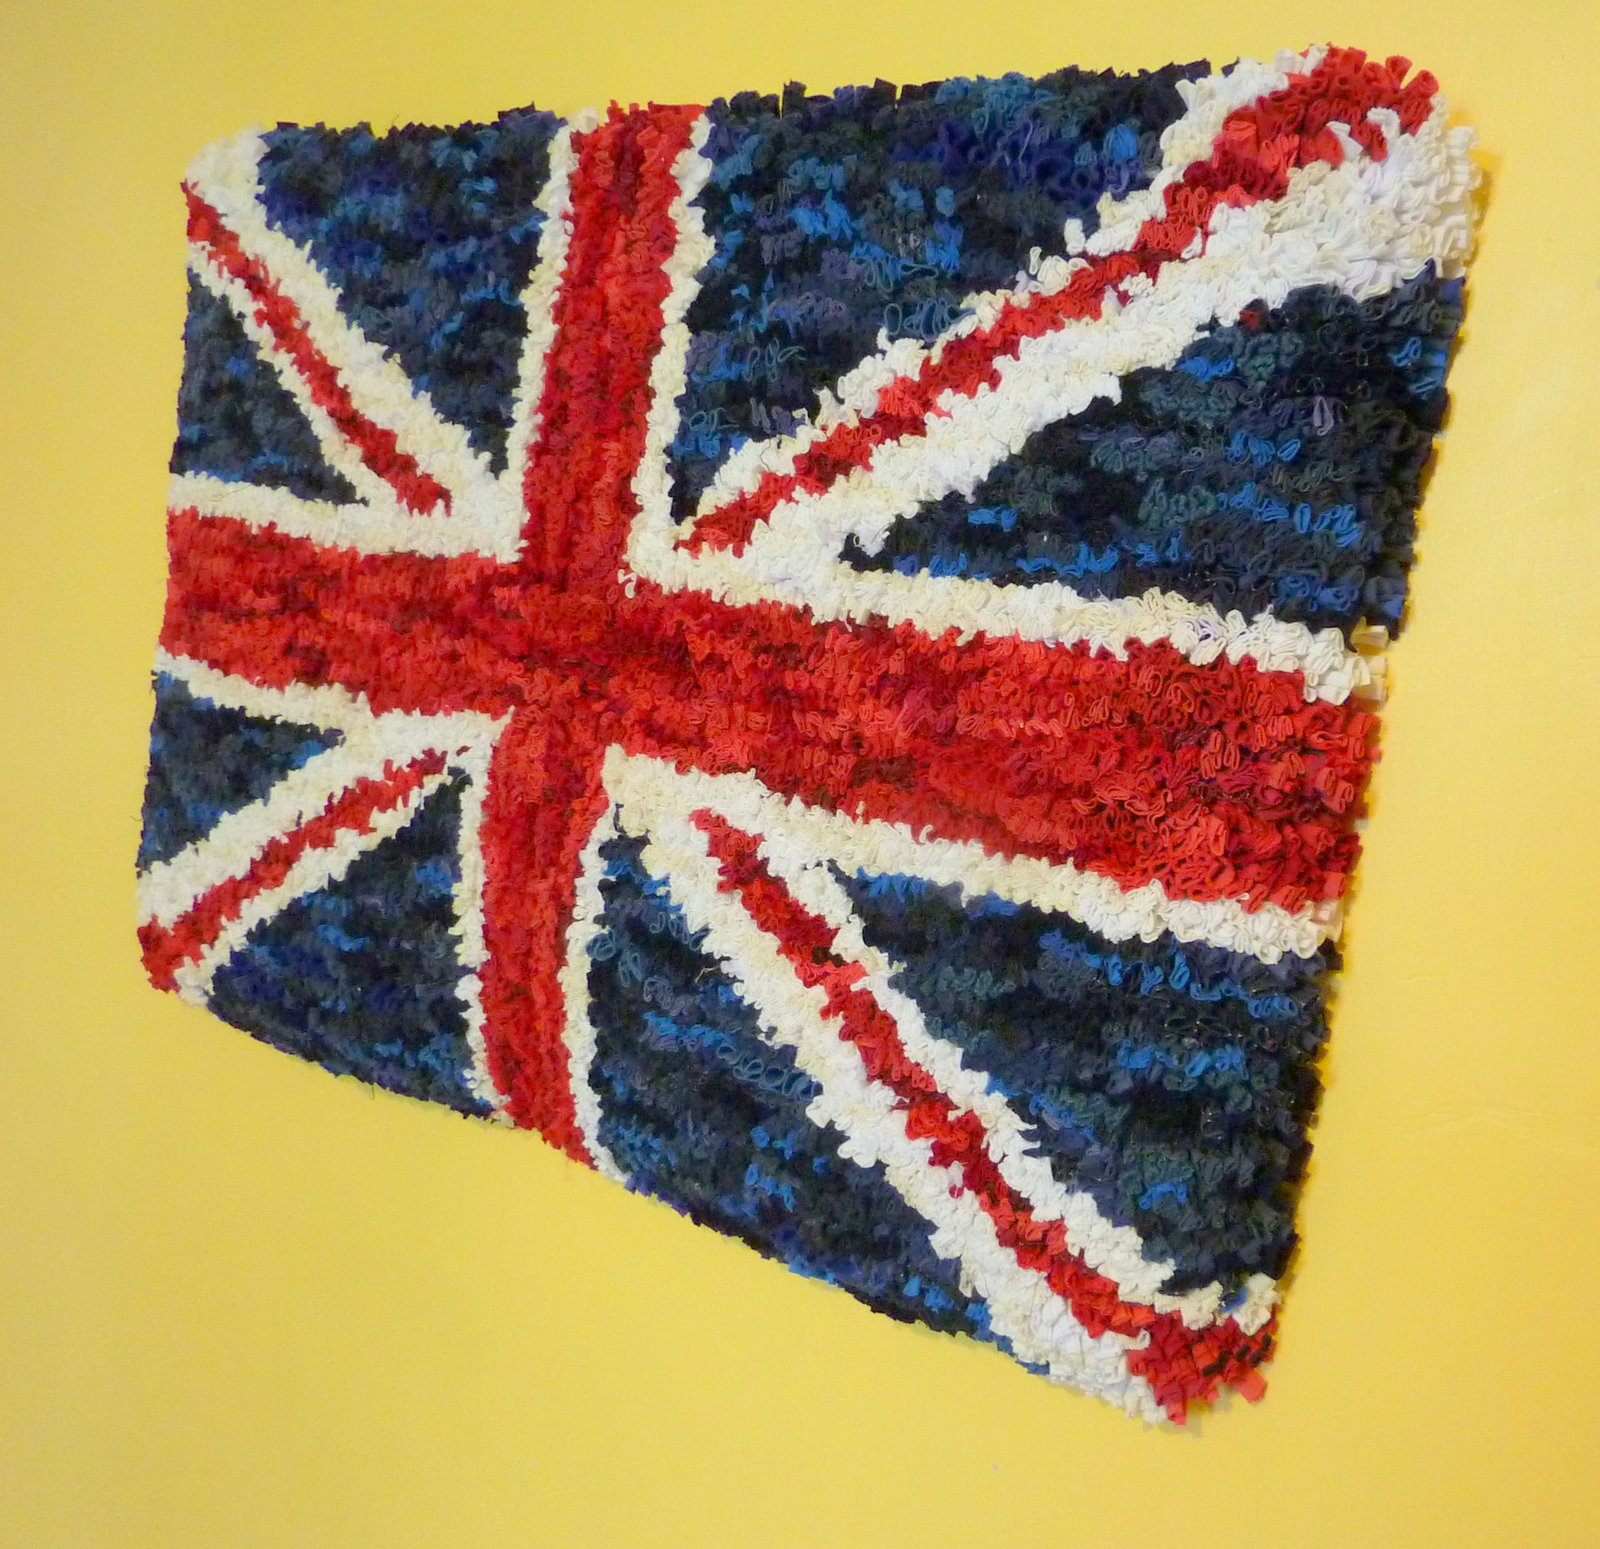 Fire Horse Textiles Austerity Britain 7 Rag Rug Wall Hanging